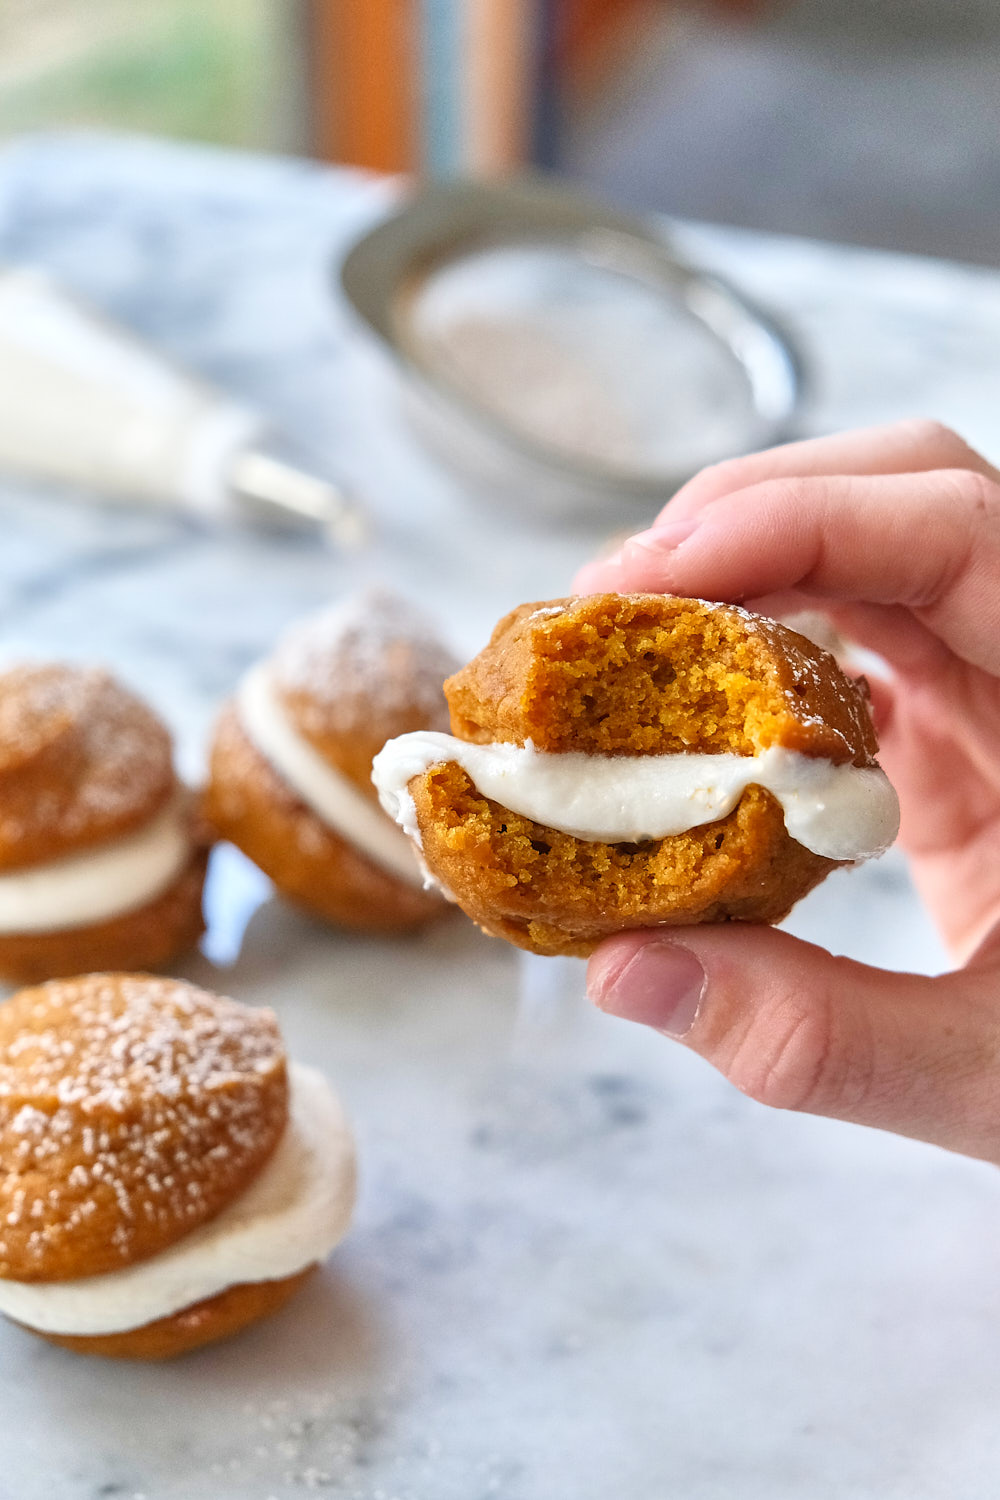 Mini pumpkin whoopie pie with a bite taken out of it.